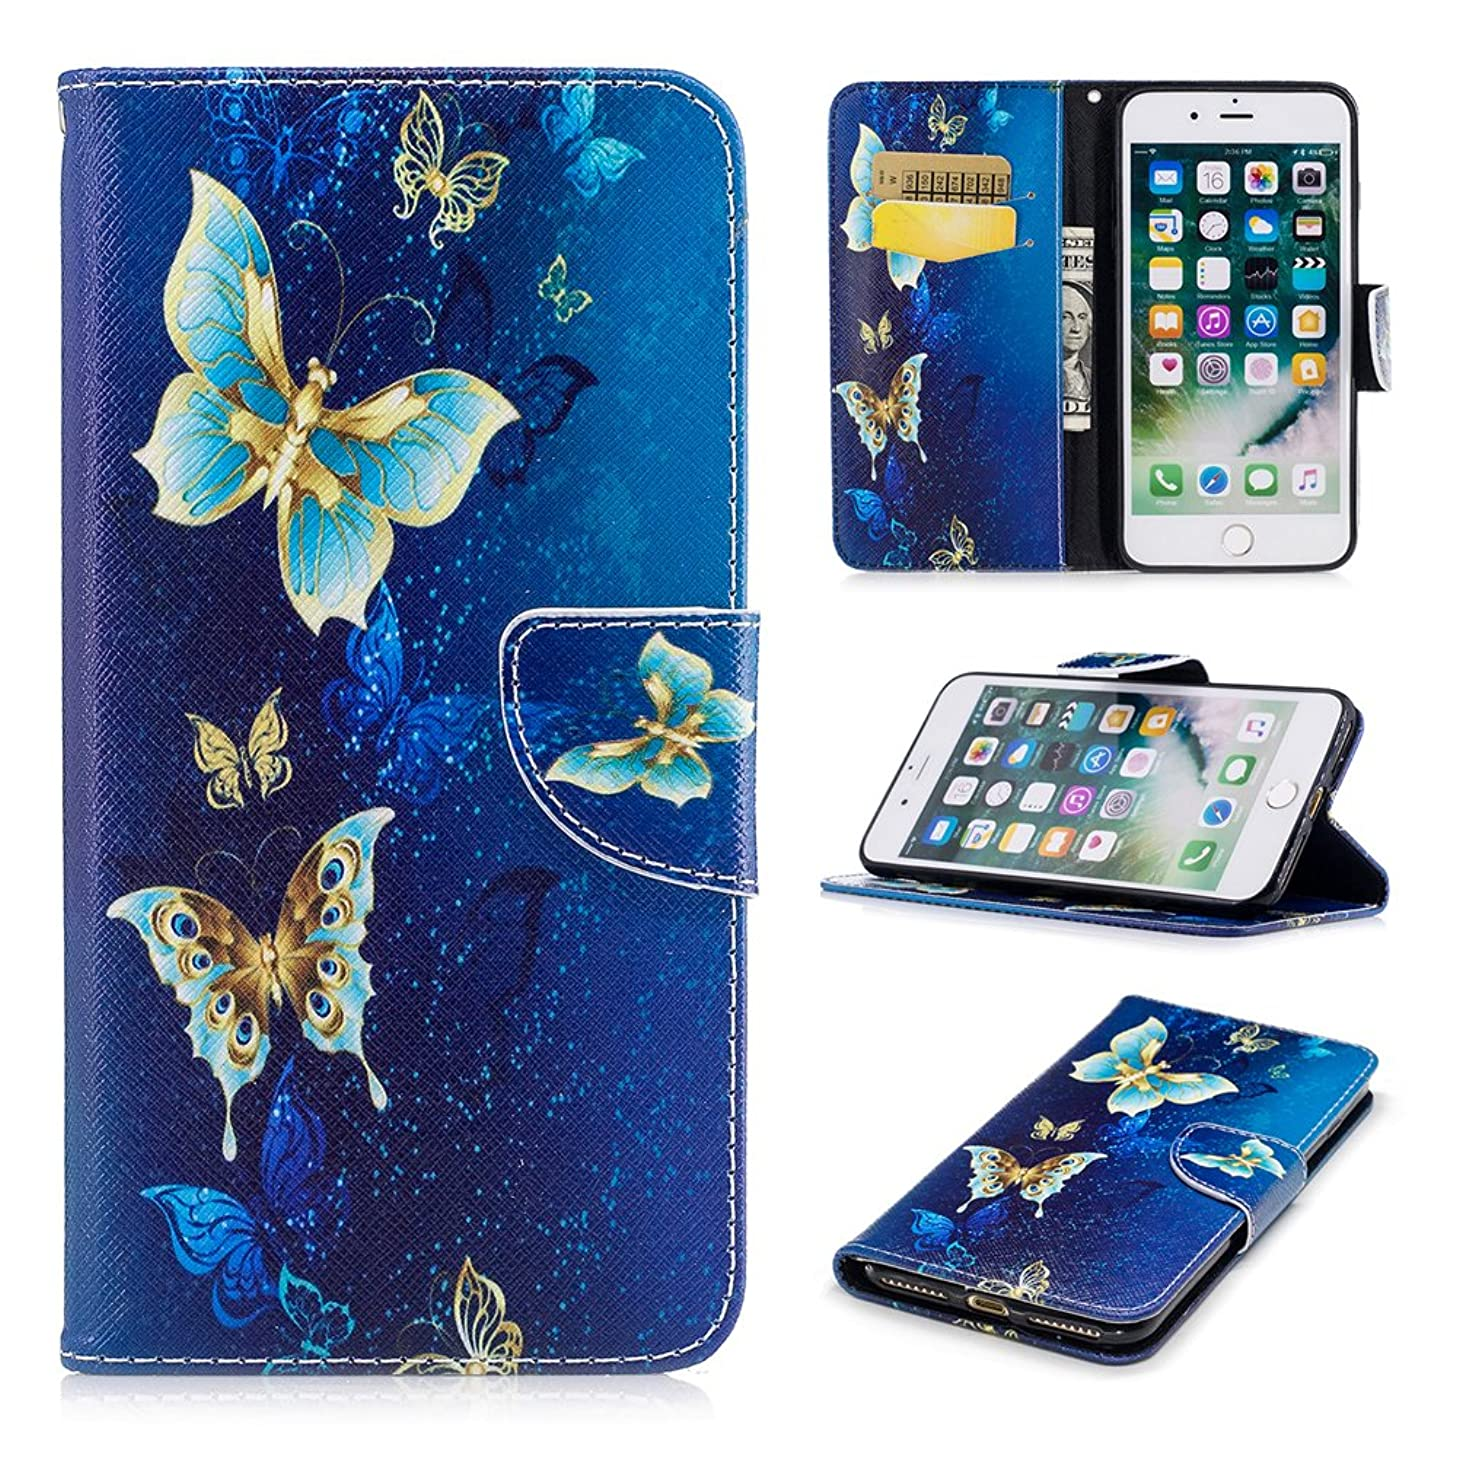 iPhone 8 Plus Case, iPhone 7 Plus Wallet Case PU Leather Folio Kickstand Colorful Painting Golden Butterfly Cover Slim-Fit Shockproof TPU Inner Bumper with Card Slots for iPhone 8 Plus, iPhone 7 Plus